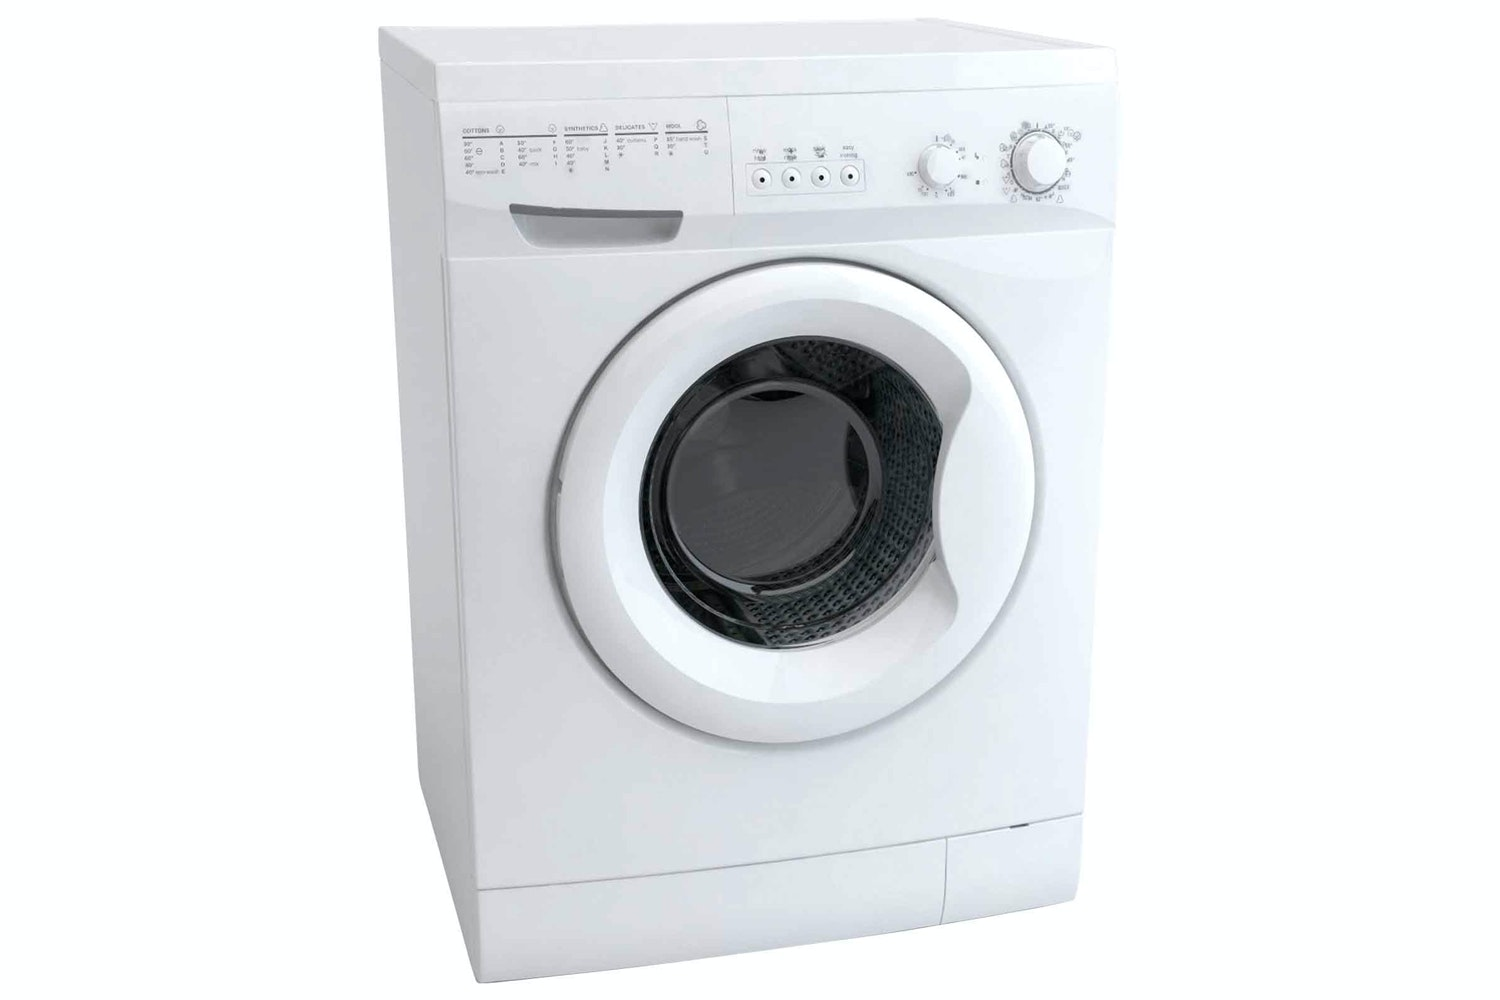 Finlux 5kg Washing Machine